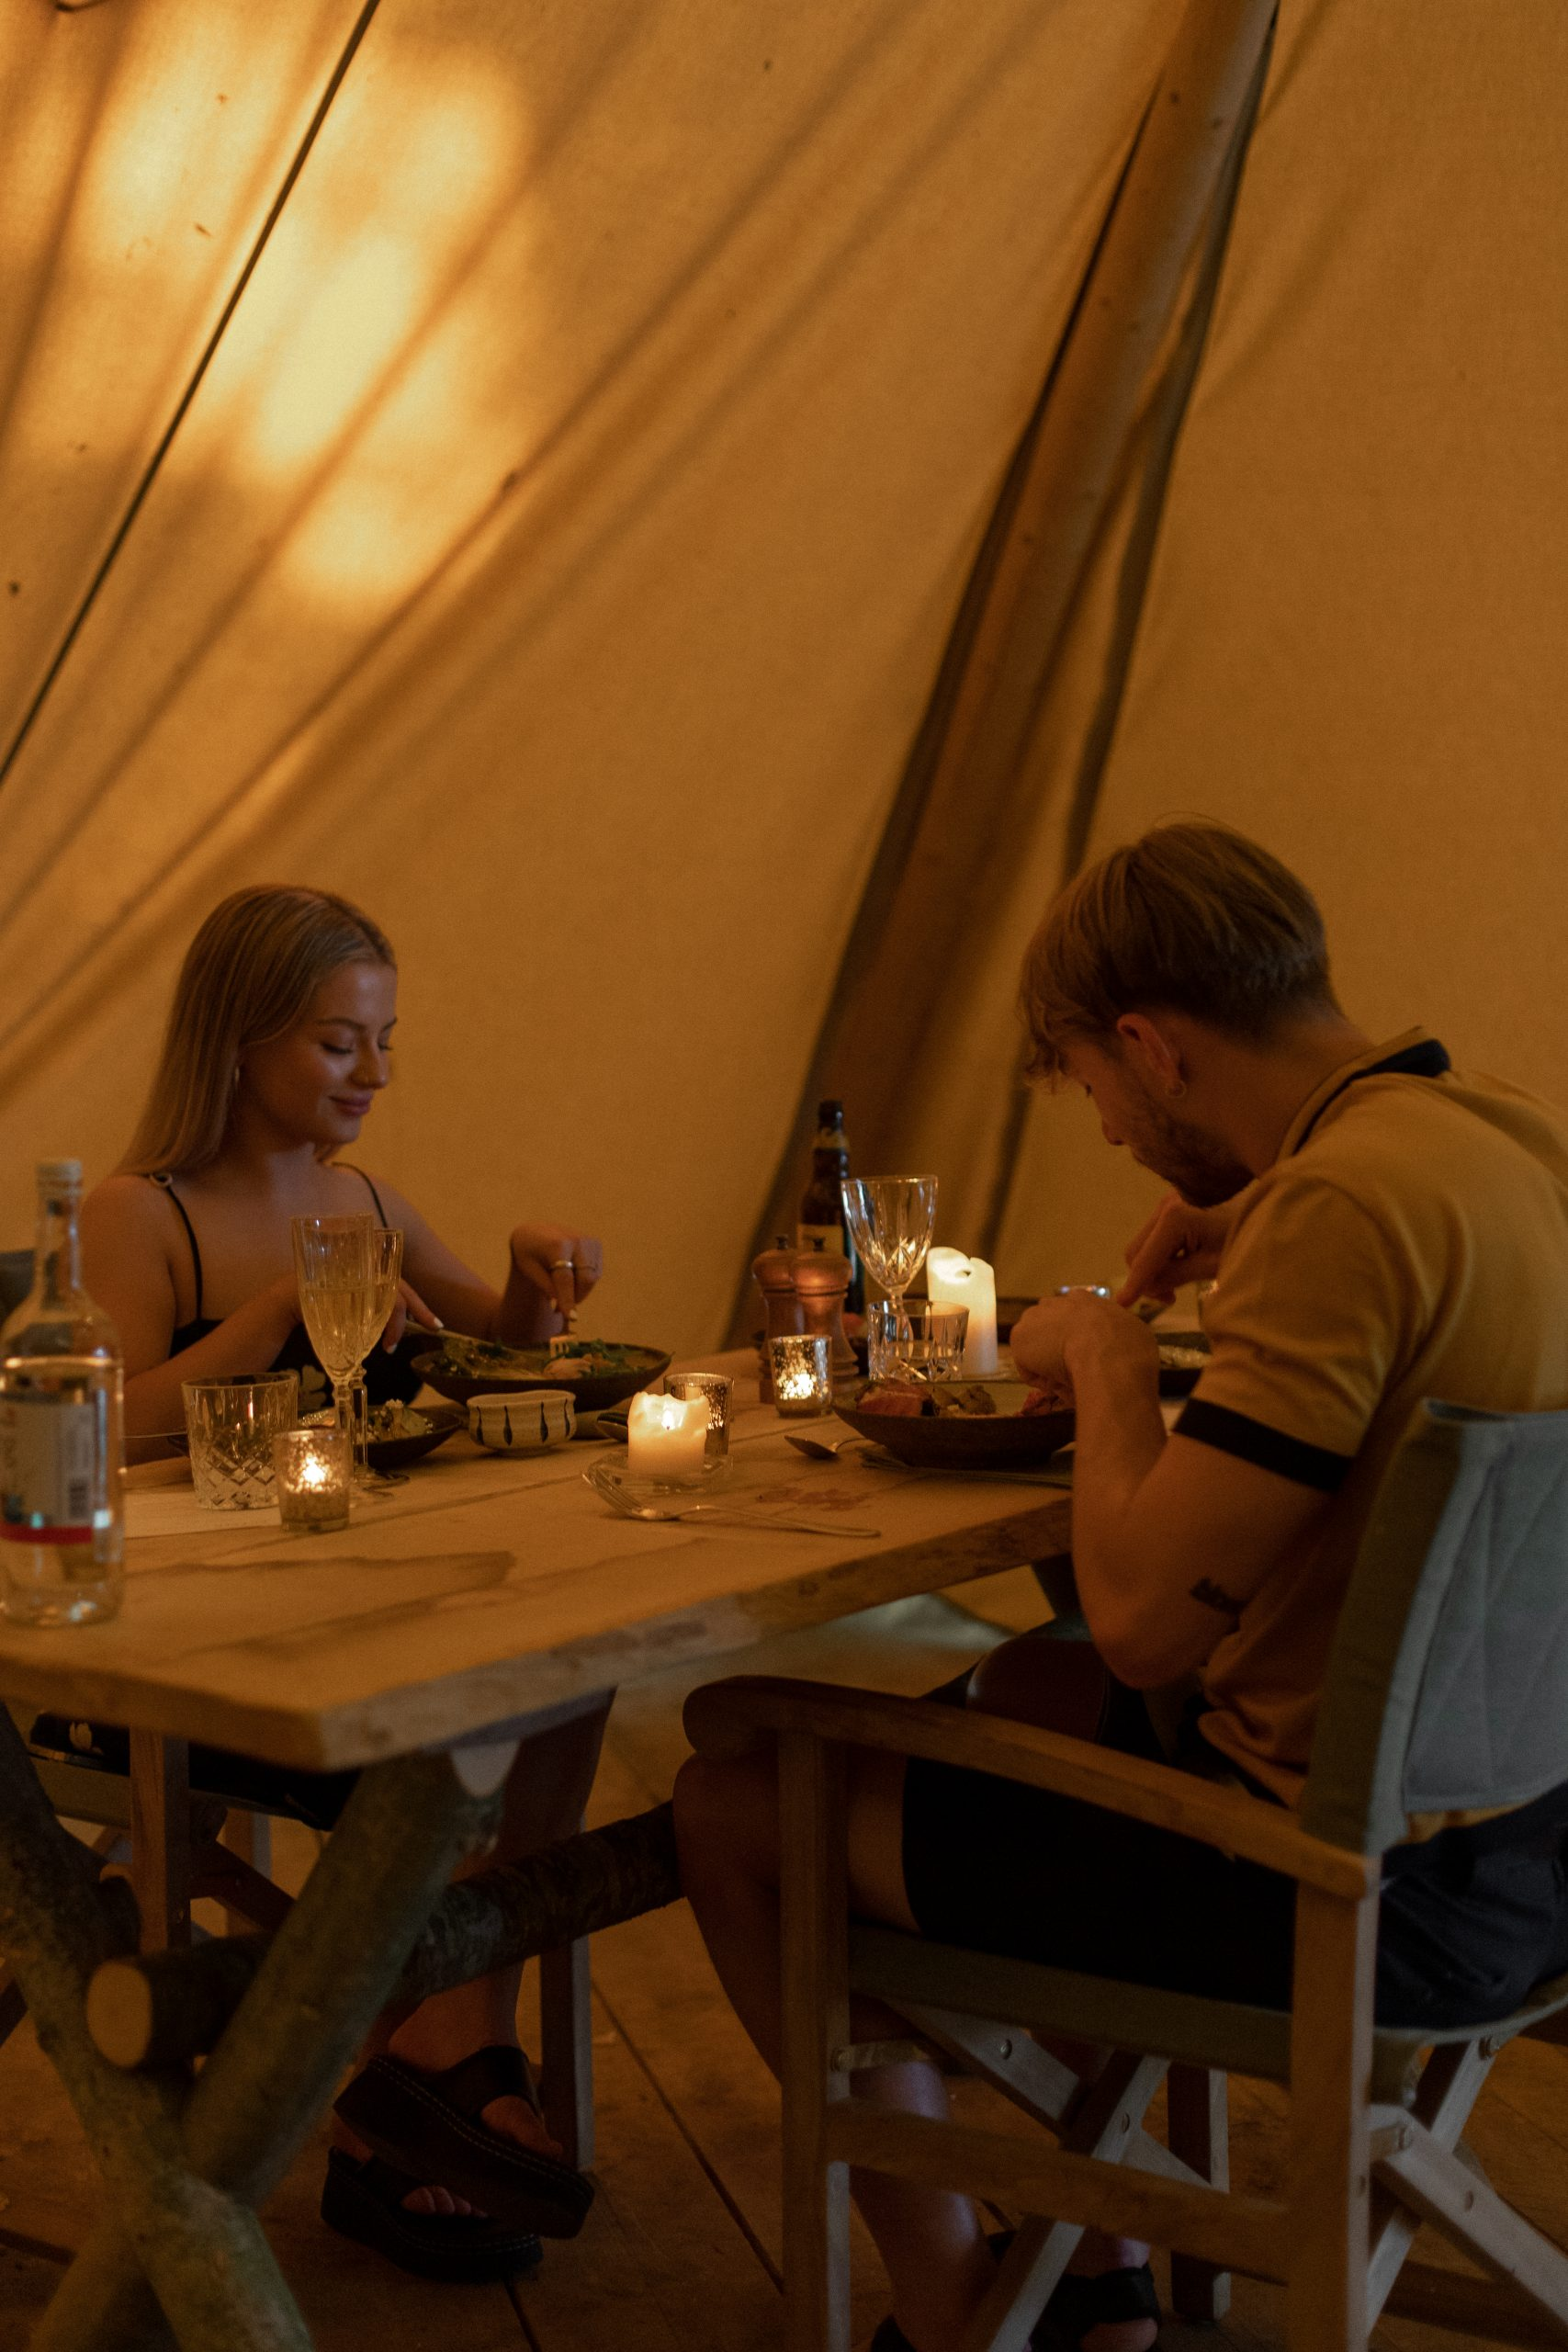 Chloe and Keiran eating dinner in the tent